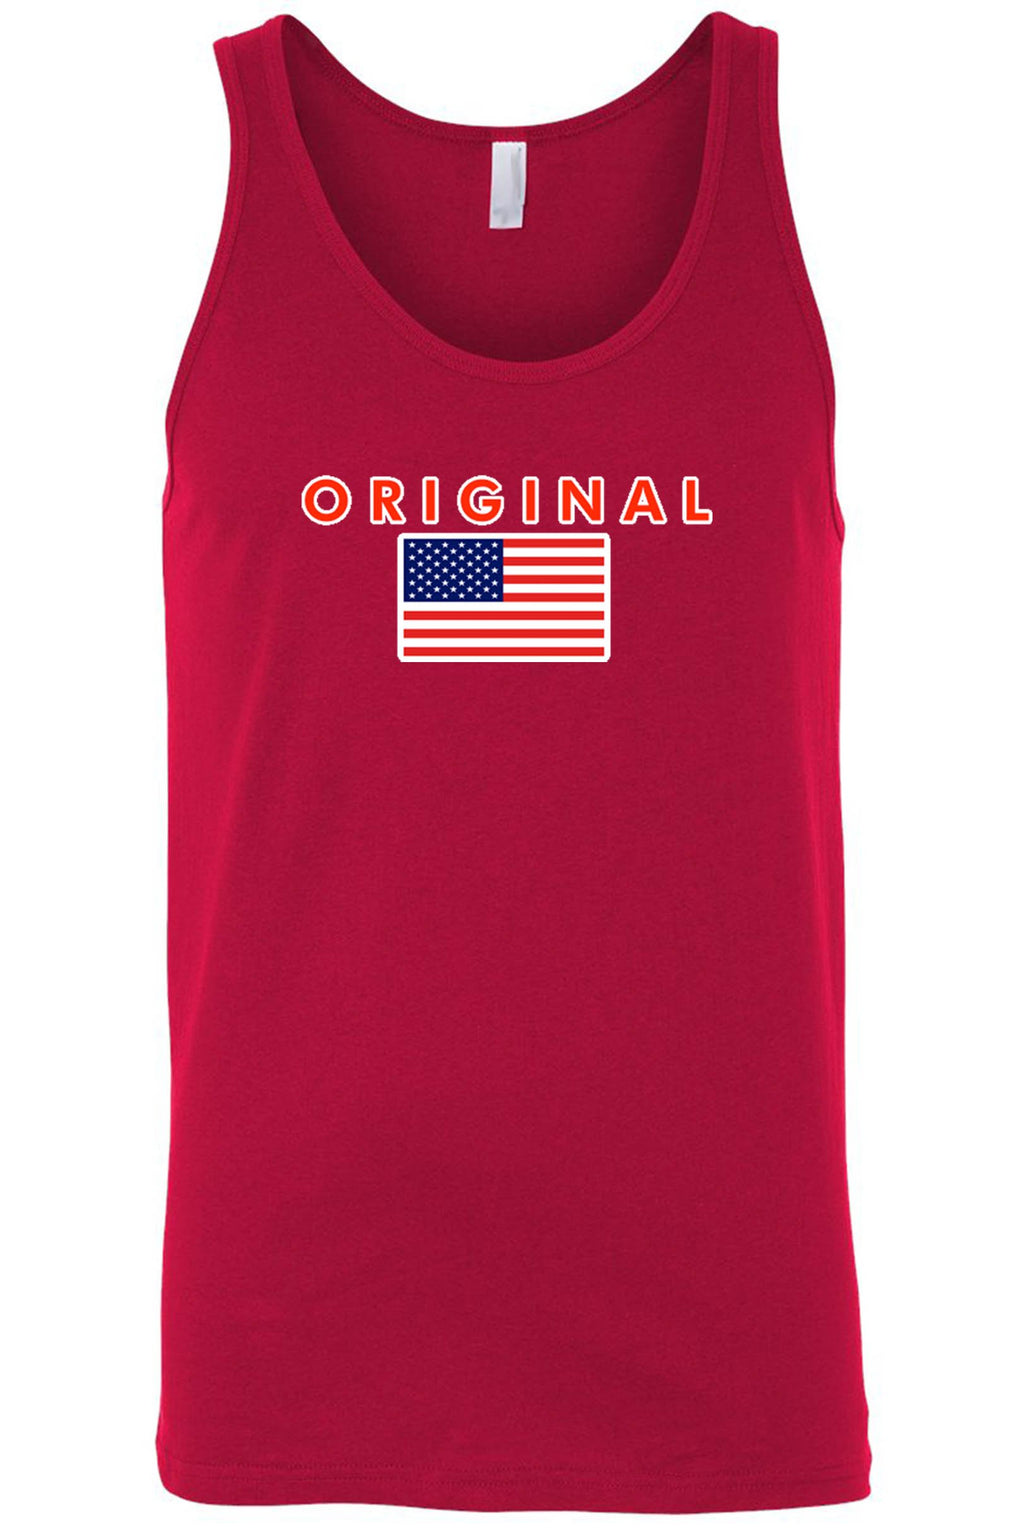 USA Flag Tank Top Men's Original Amercian Shirt